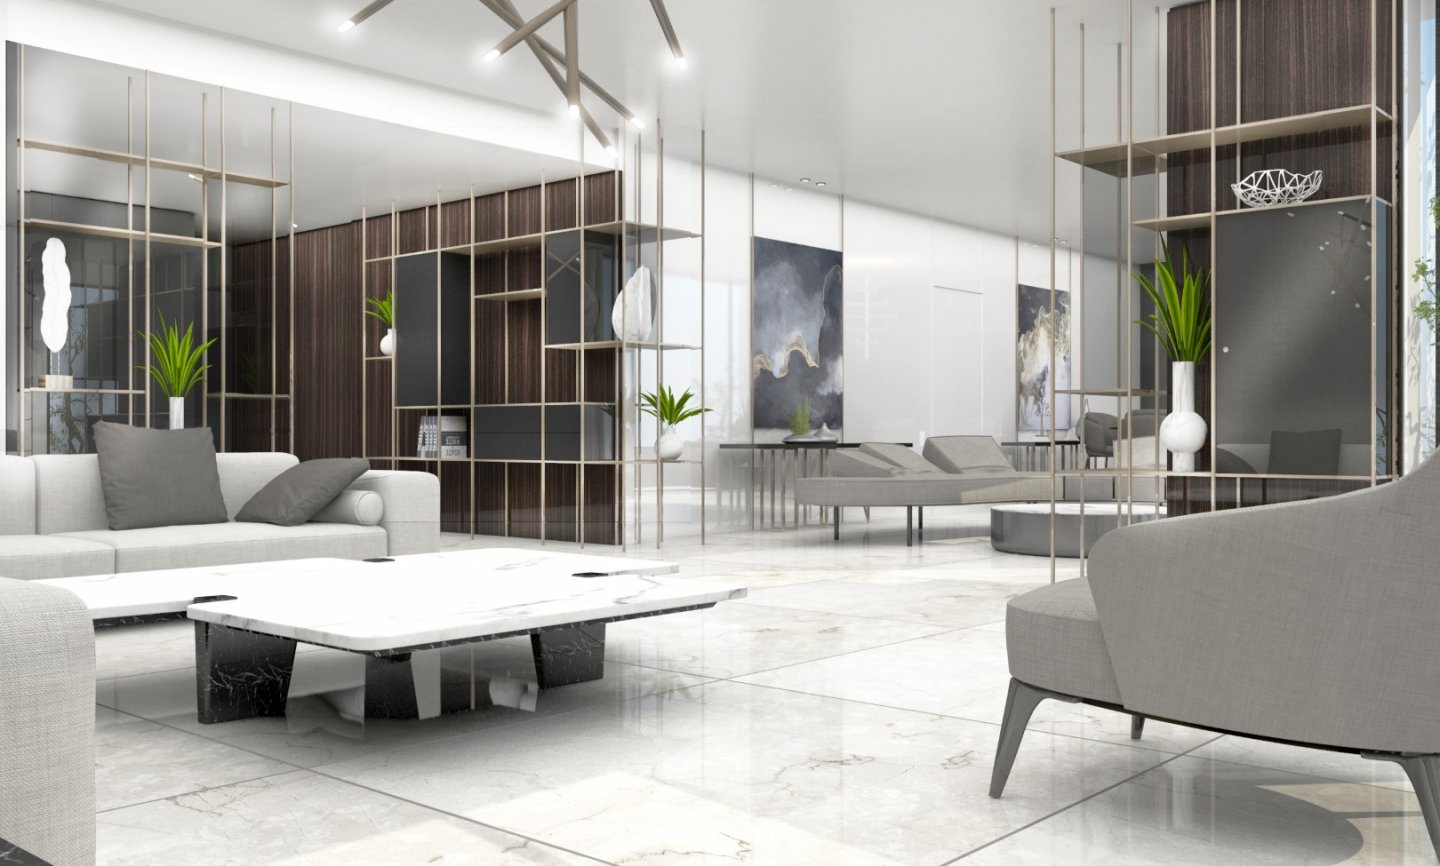 R.B Apartment - project overview image